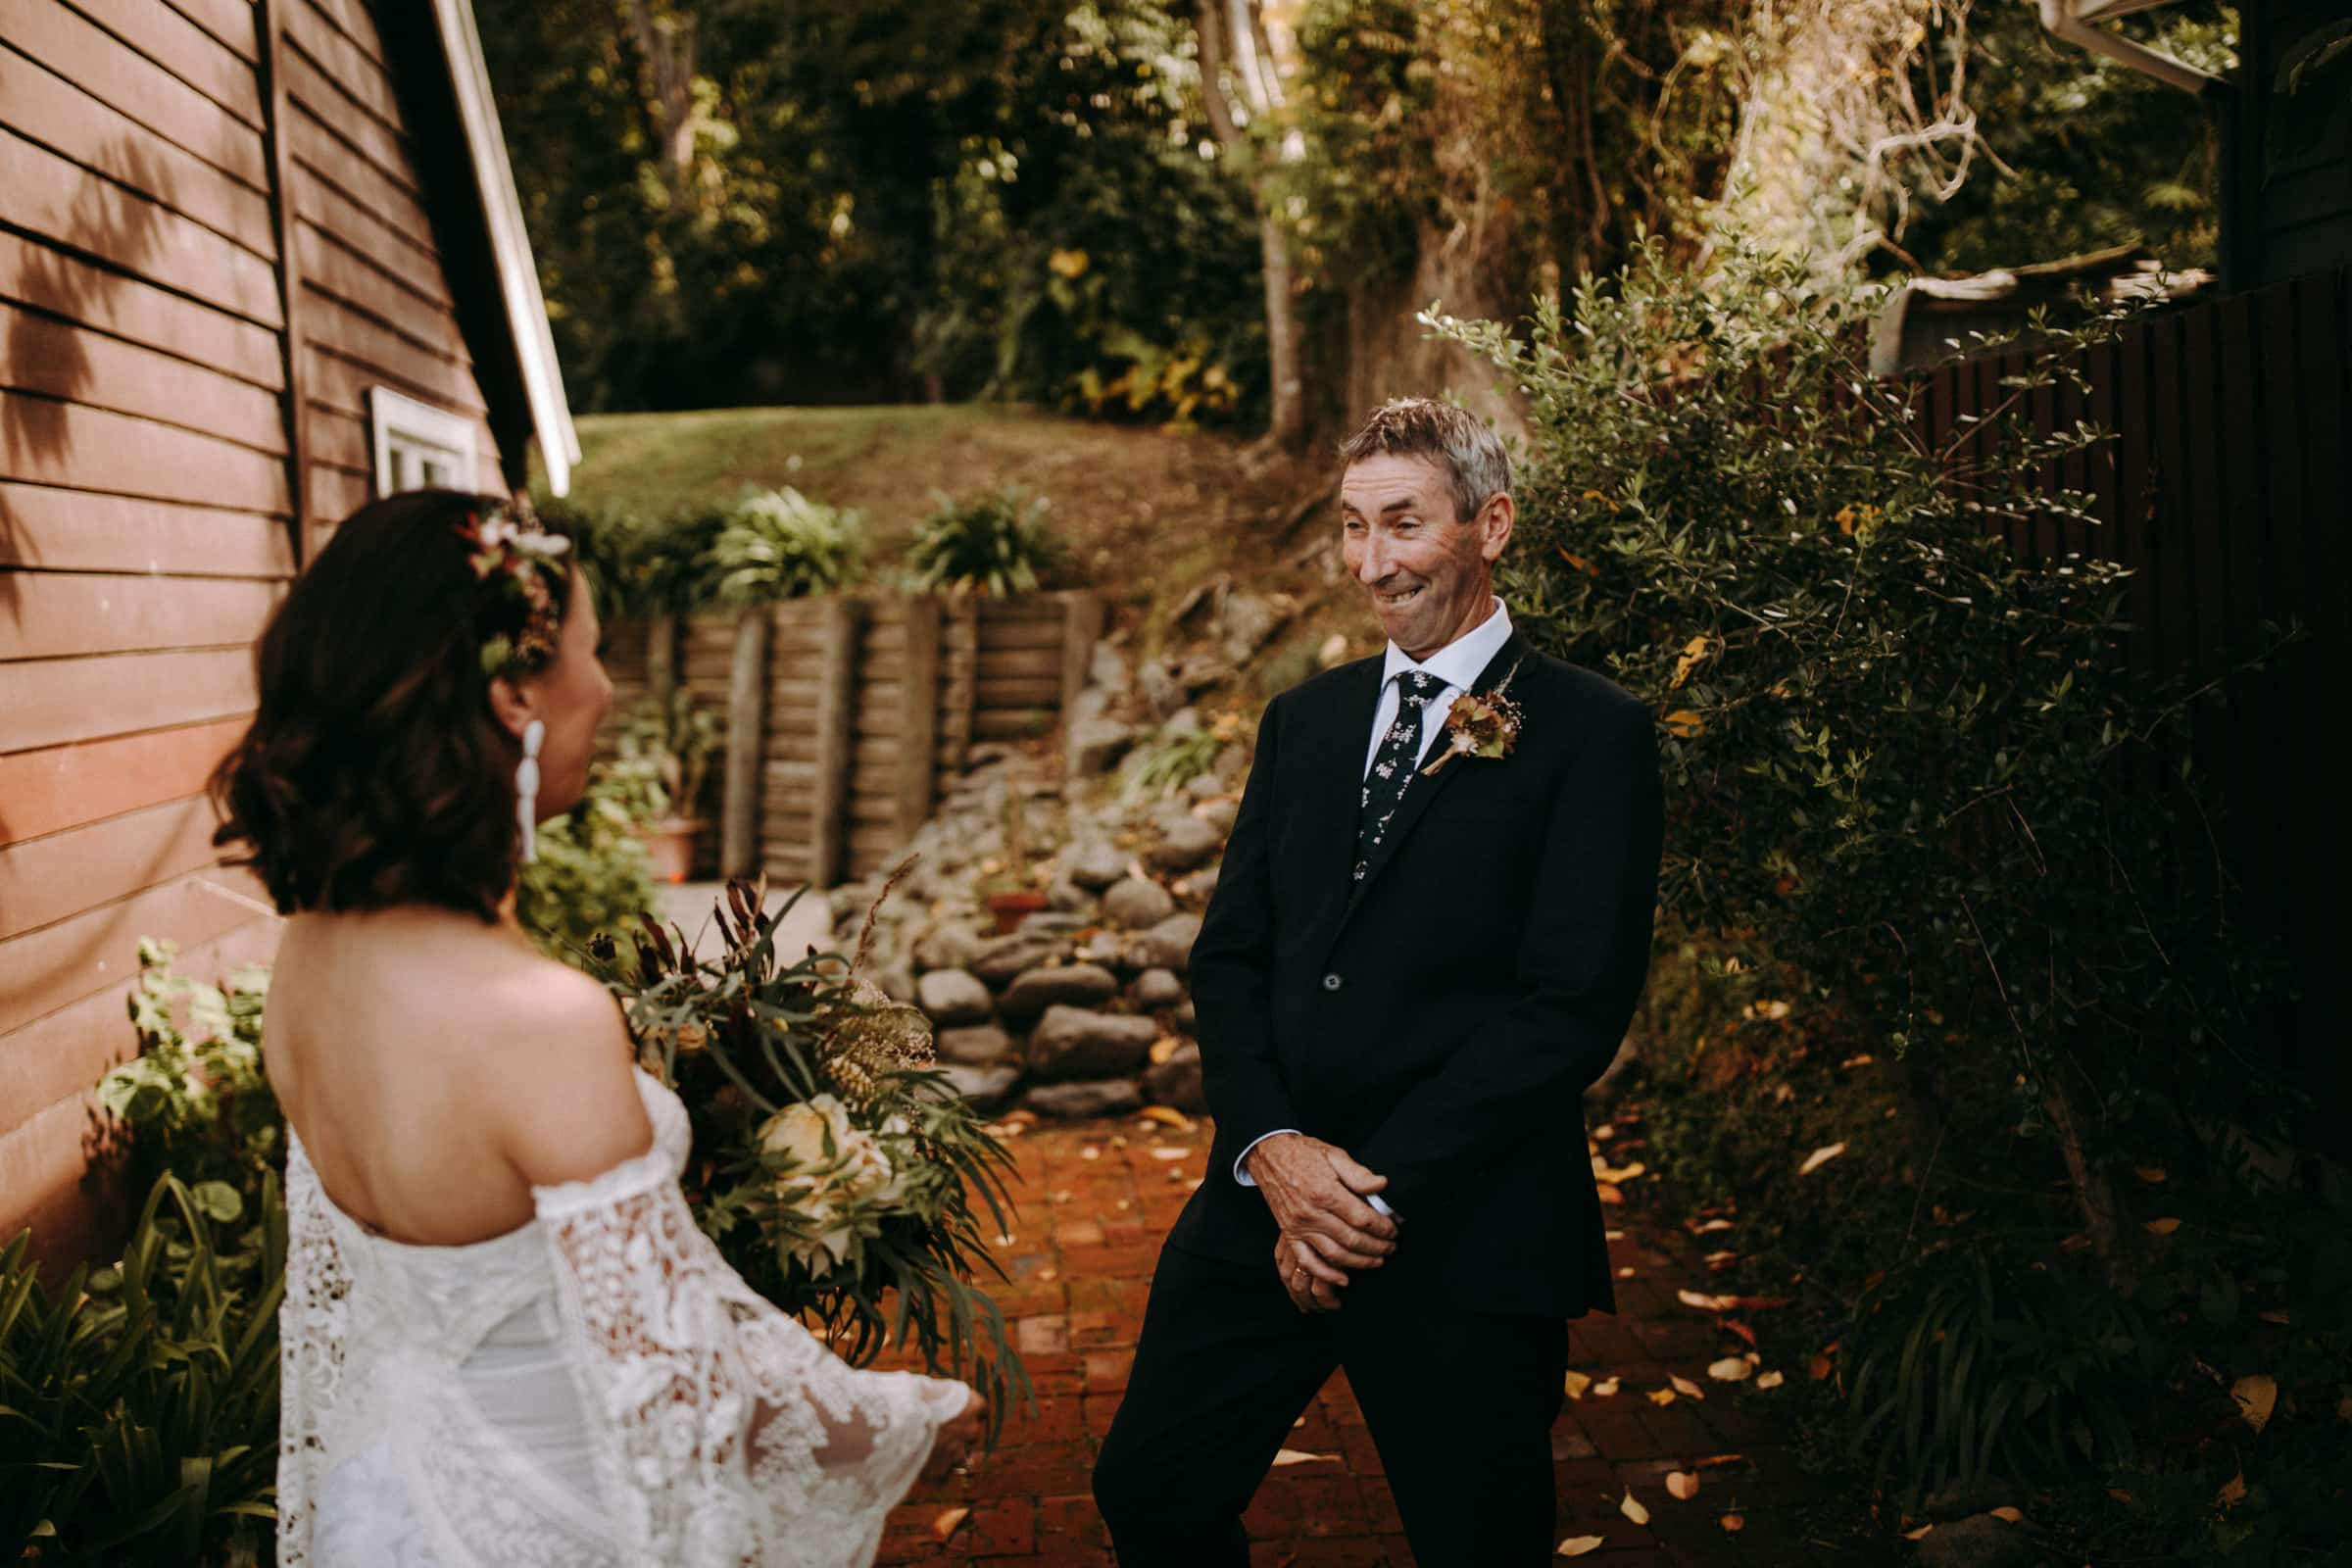 A bride and her father are having their first look and are standing in the garden.